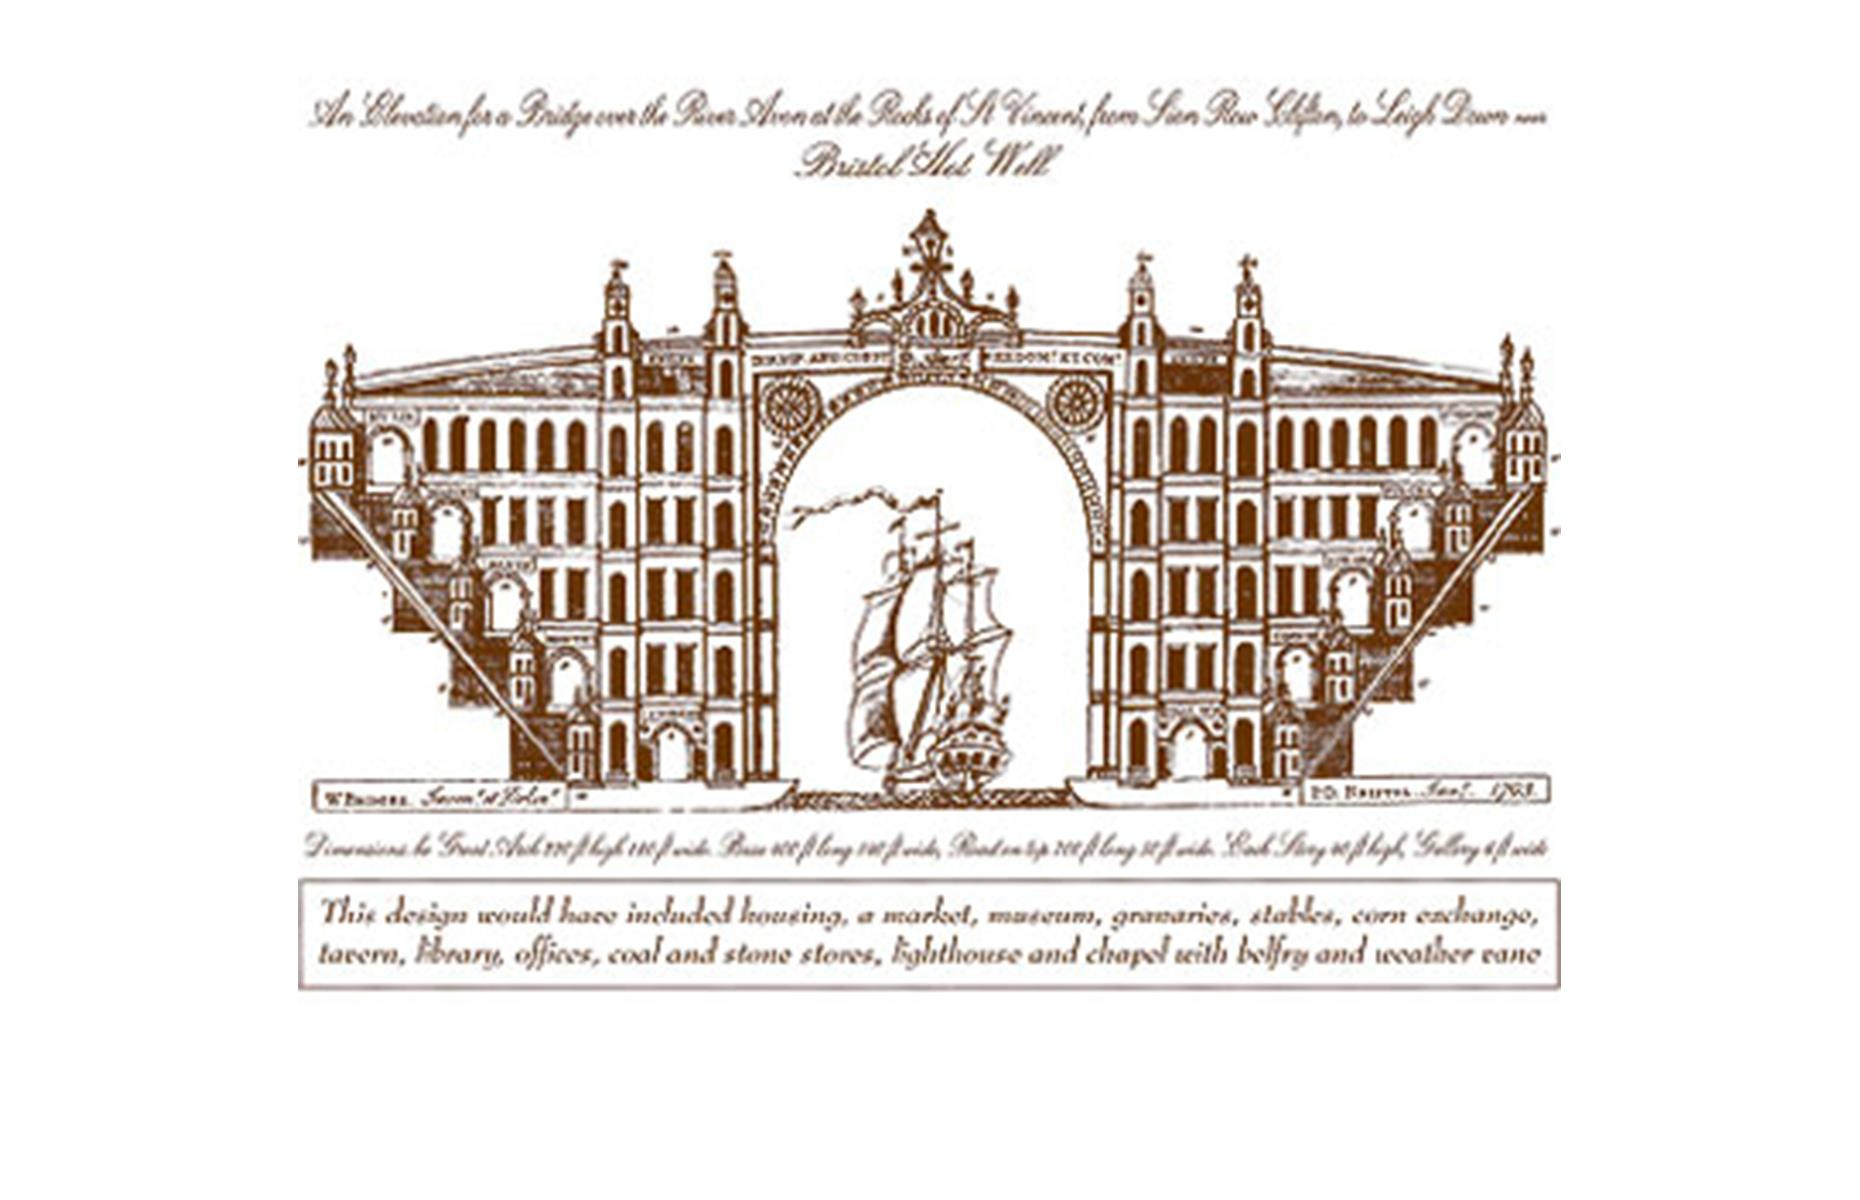 Slide 17 of 28: The idea for a bridge here first arose in the 1750s, when merchant William Vick left money towards the structure in his will. Architect William Bridges put forward a design (pictured) made up of a mighty stone arch, supported each side by towers of homes and factories. However, when the French Revolution kicked off,Bridges' plans were put on hold and eventually abandoned due to their steep costs. A competition was held to determine the final lookof the bridgeand Brunel's more pared-back design won.